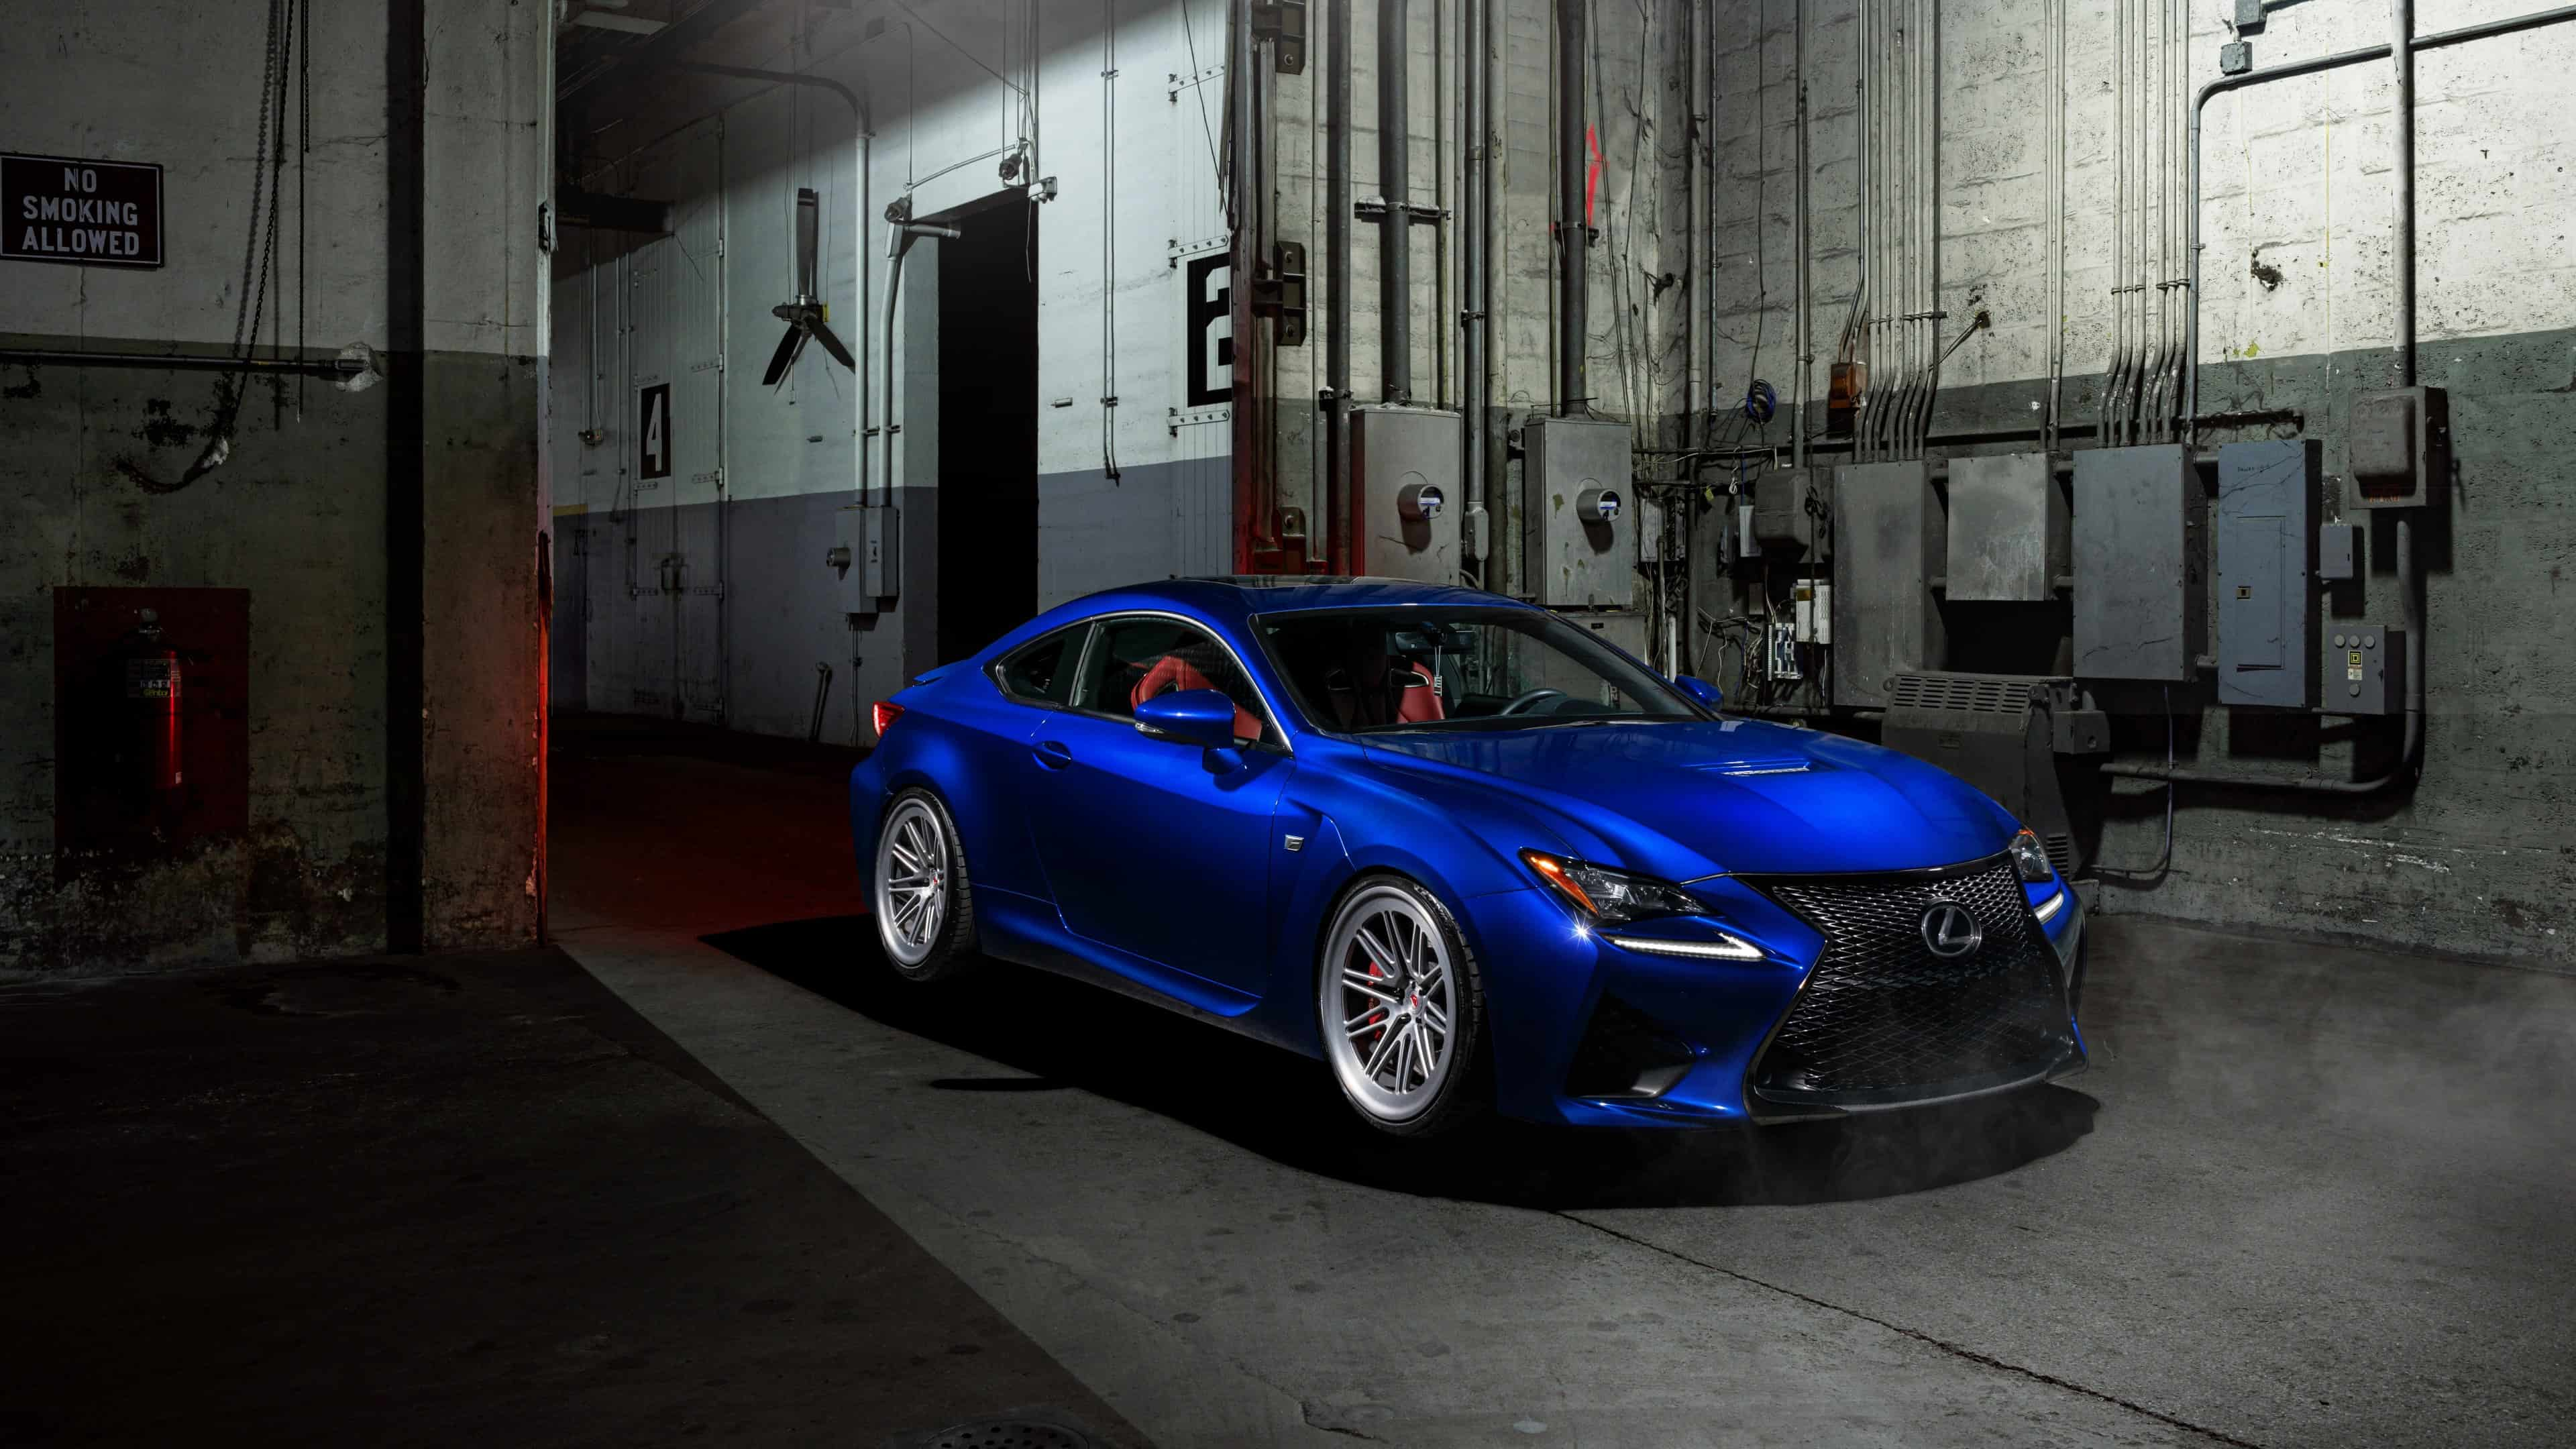 lexus rc f blue uhd 4k wallpaper